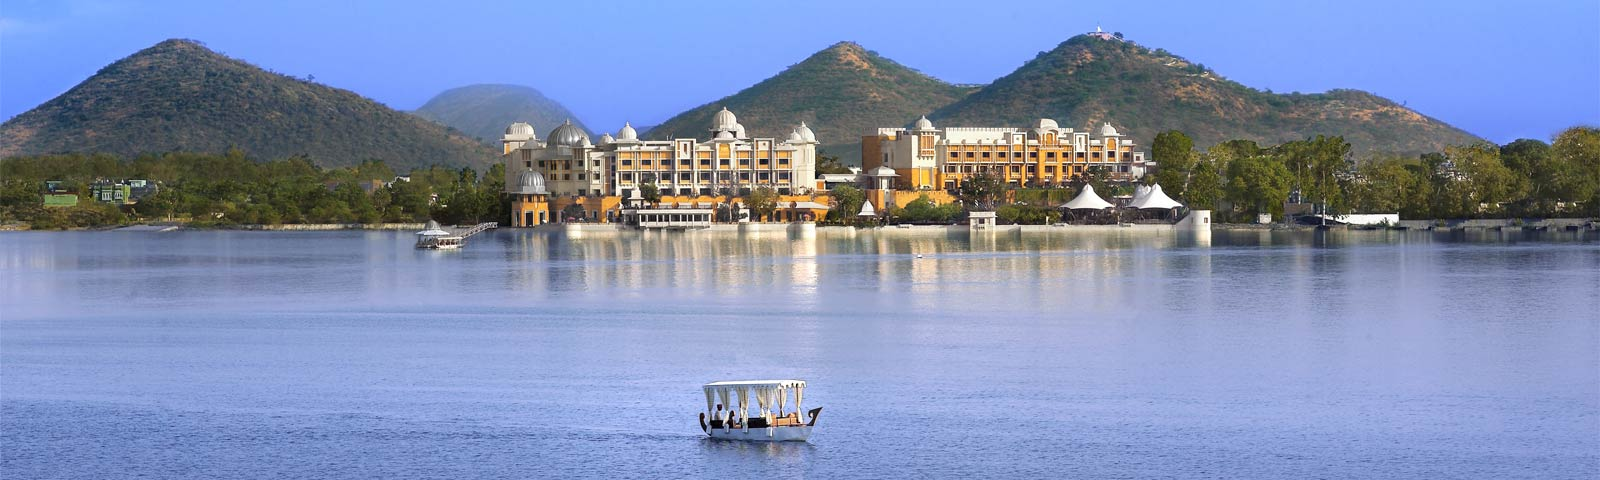 India in Sumptuous Style with Leela Palaces Hotels and Resorts